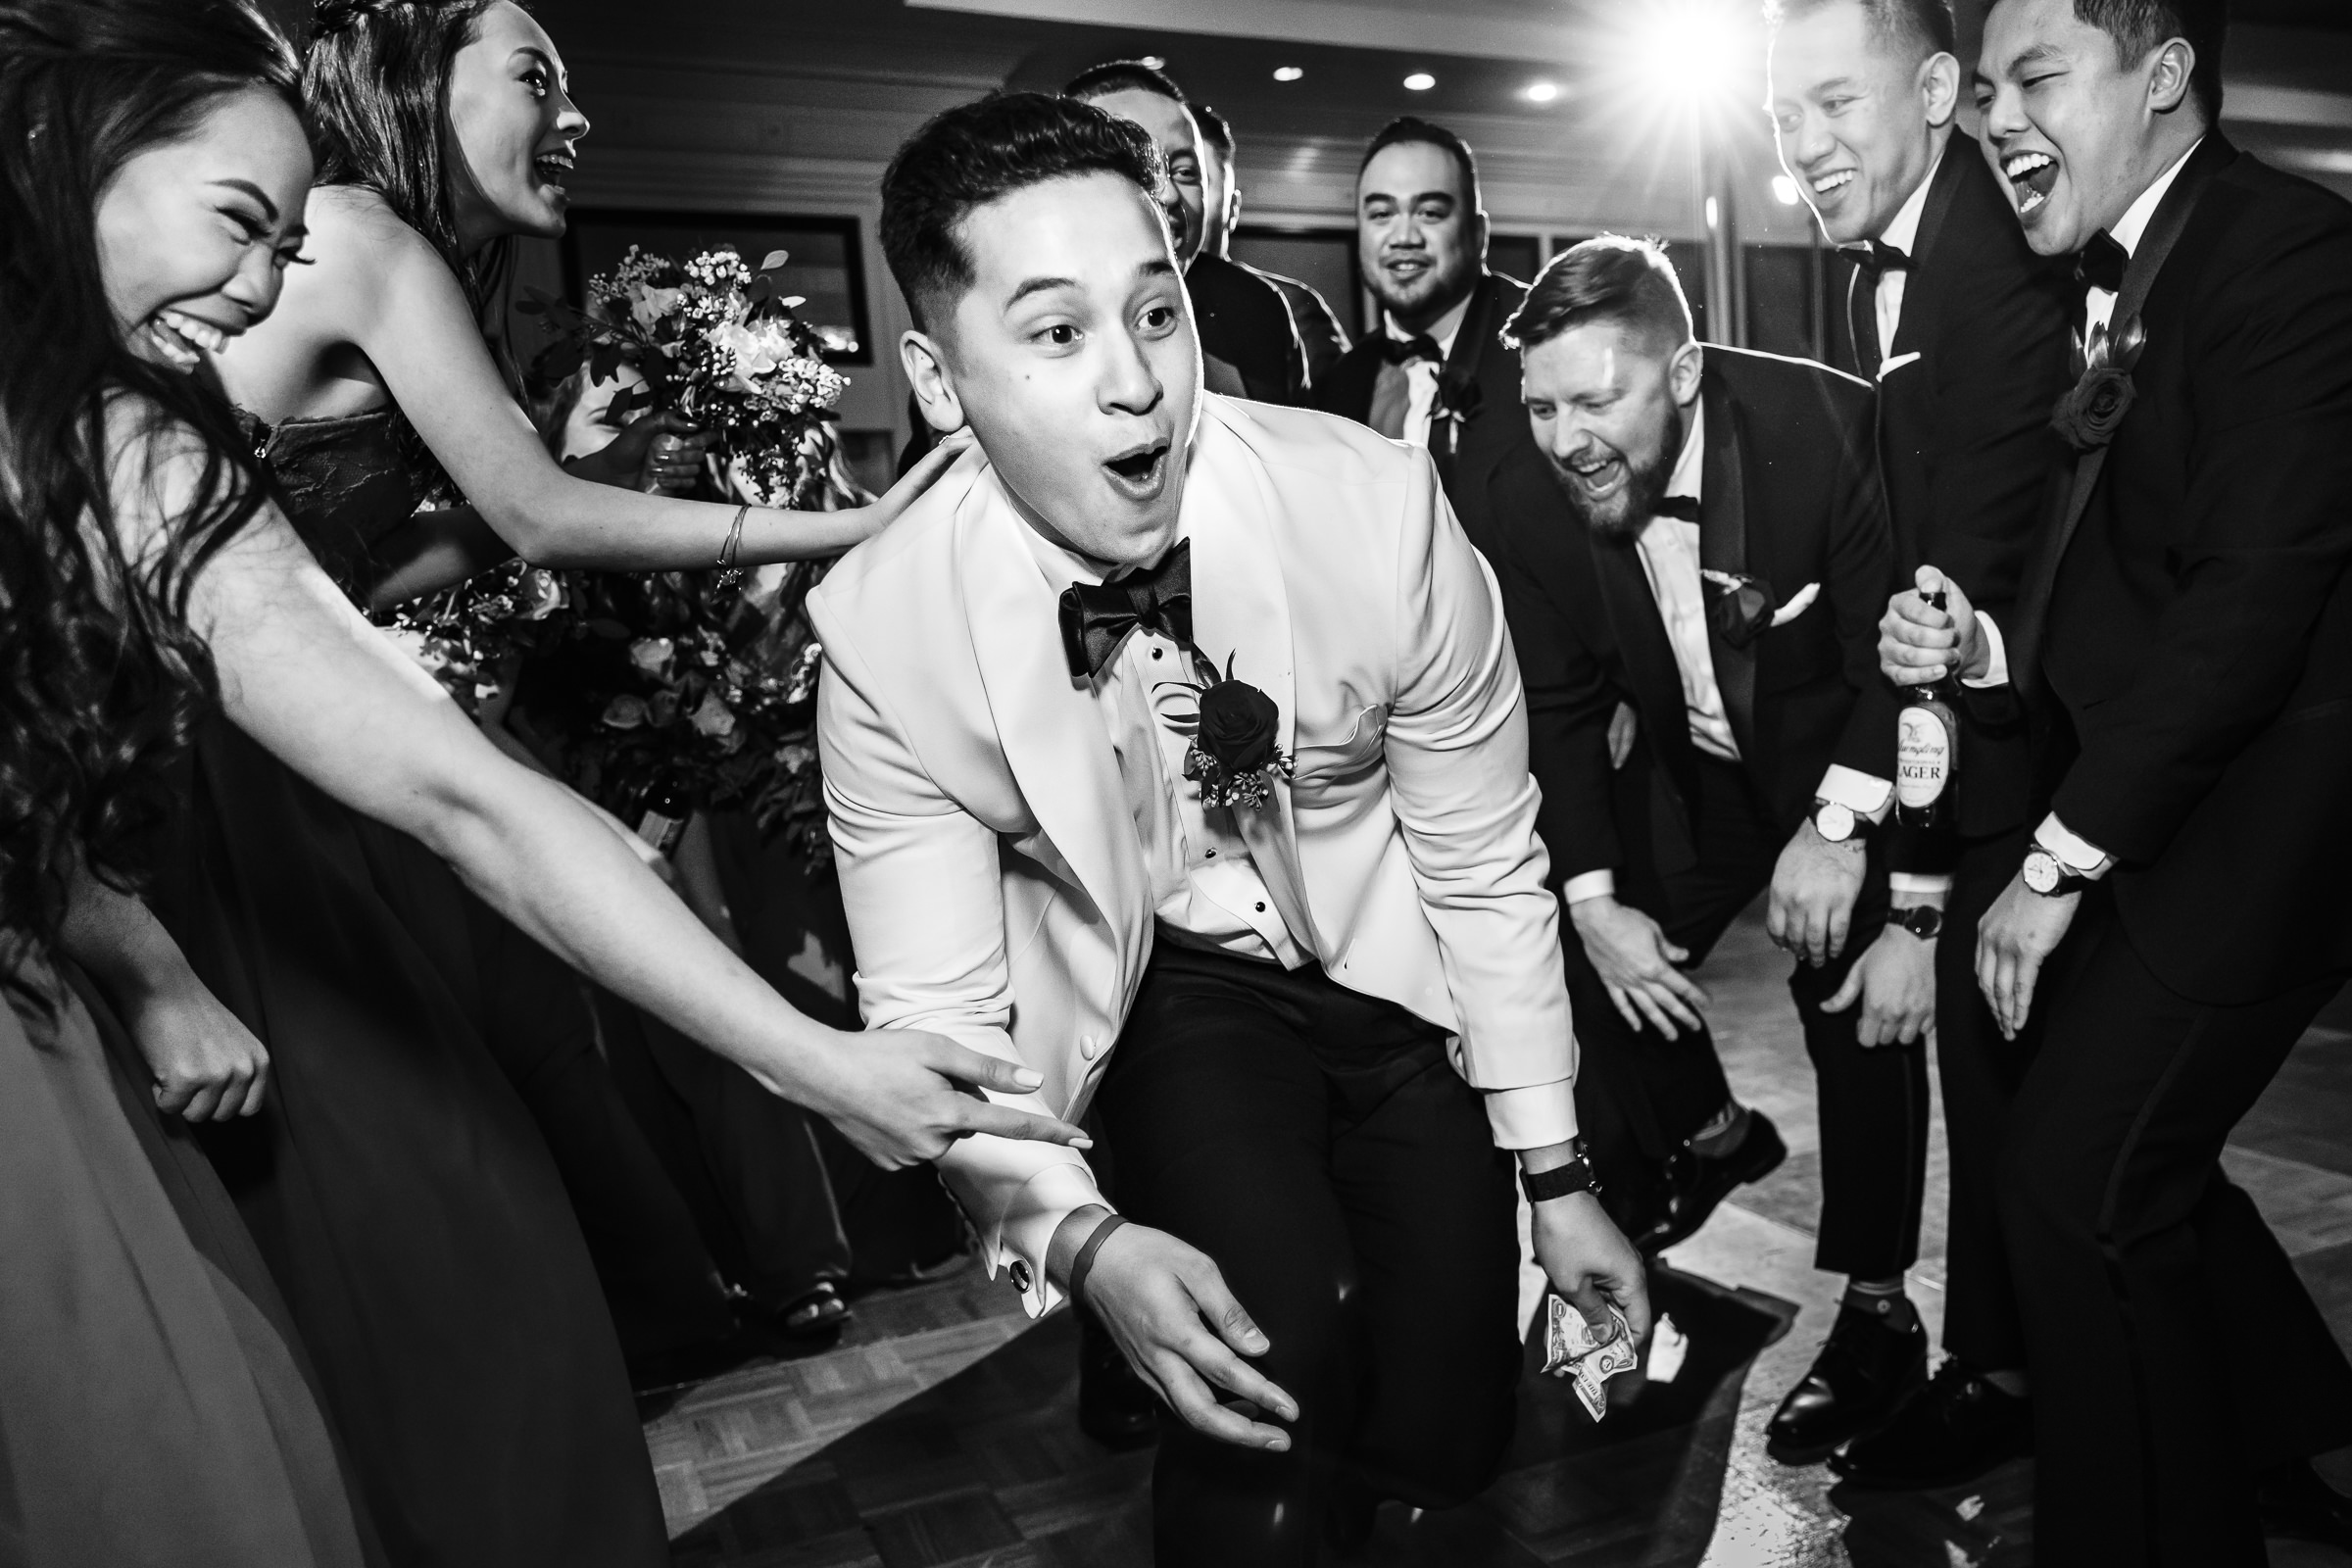 Dancing groom approaches bride with cash in hand - photo by Xiaoqi Li Photography